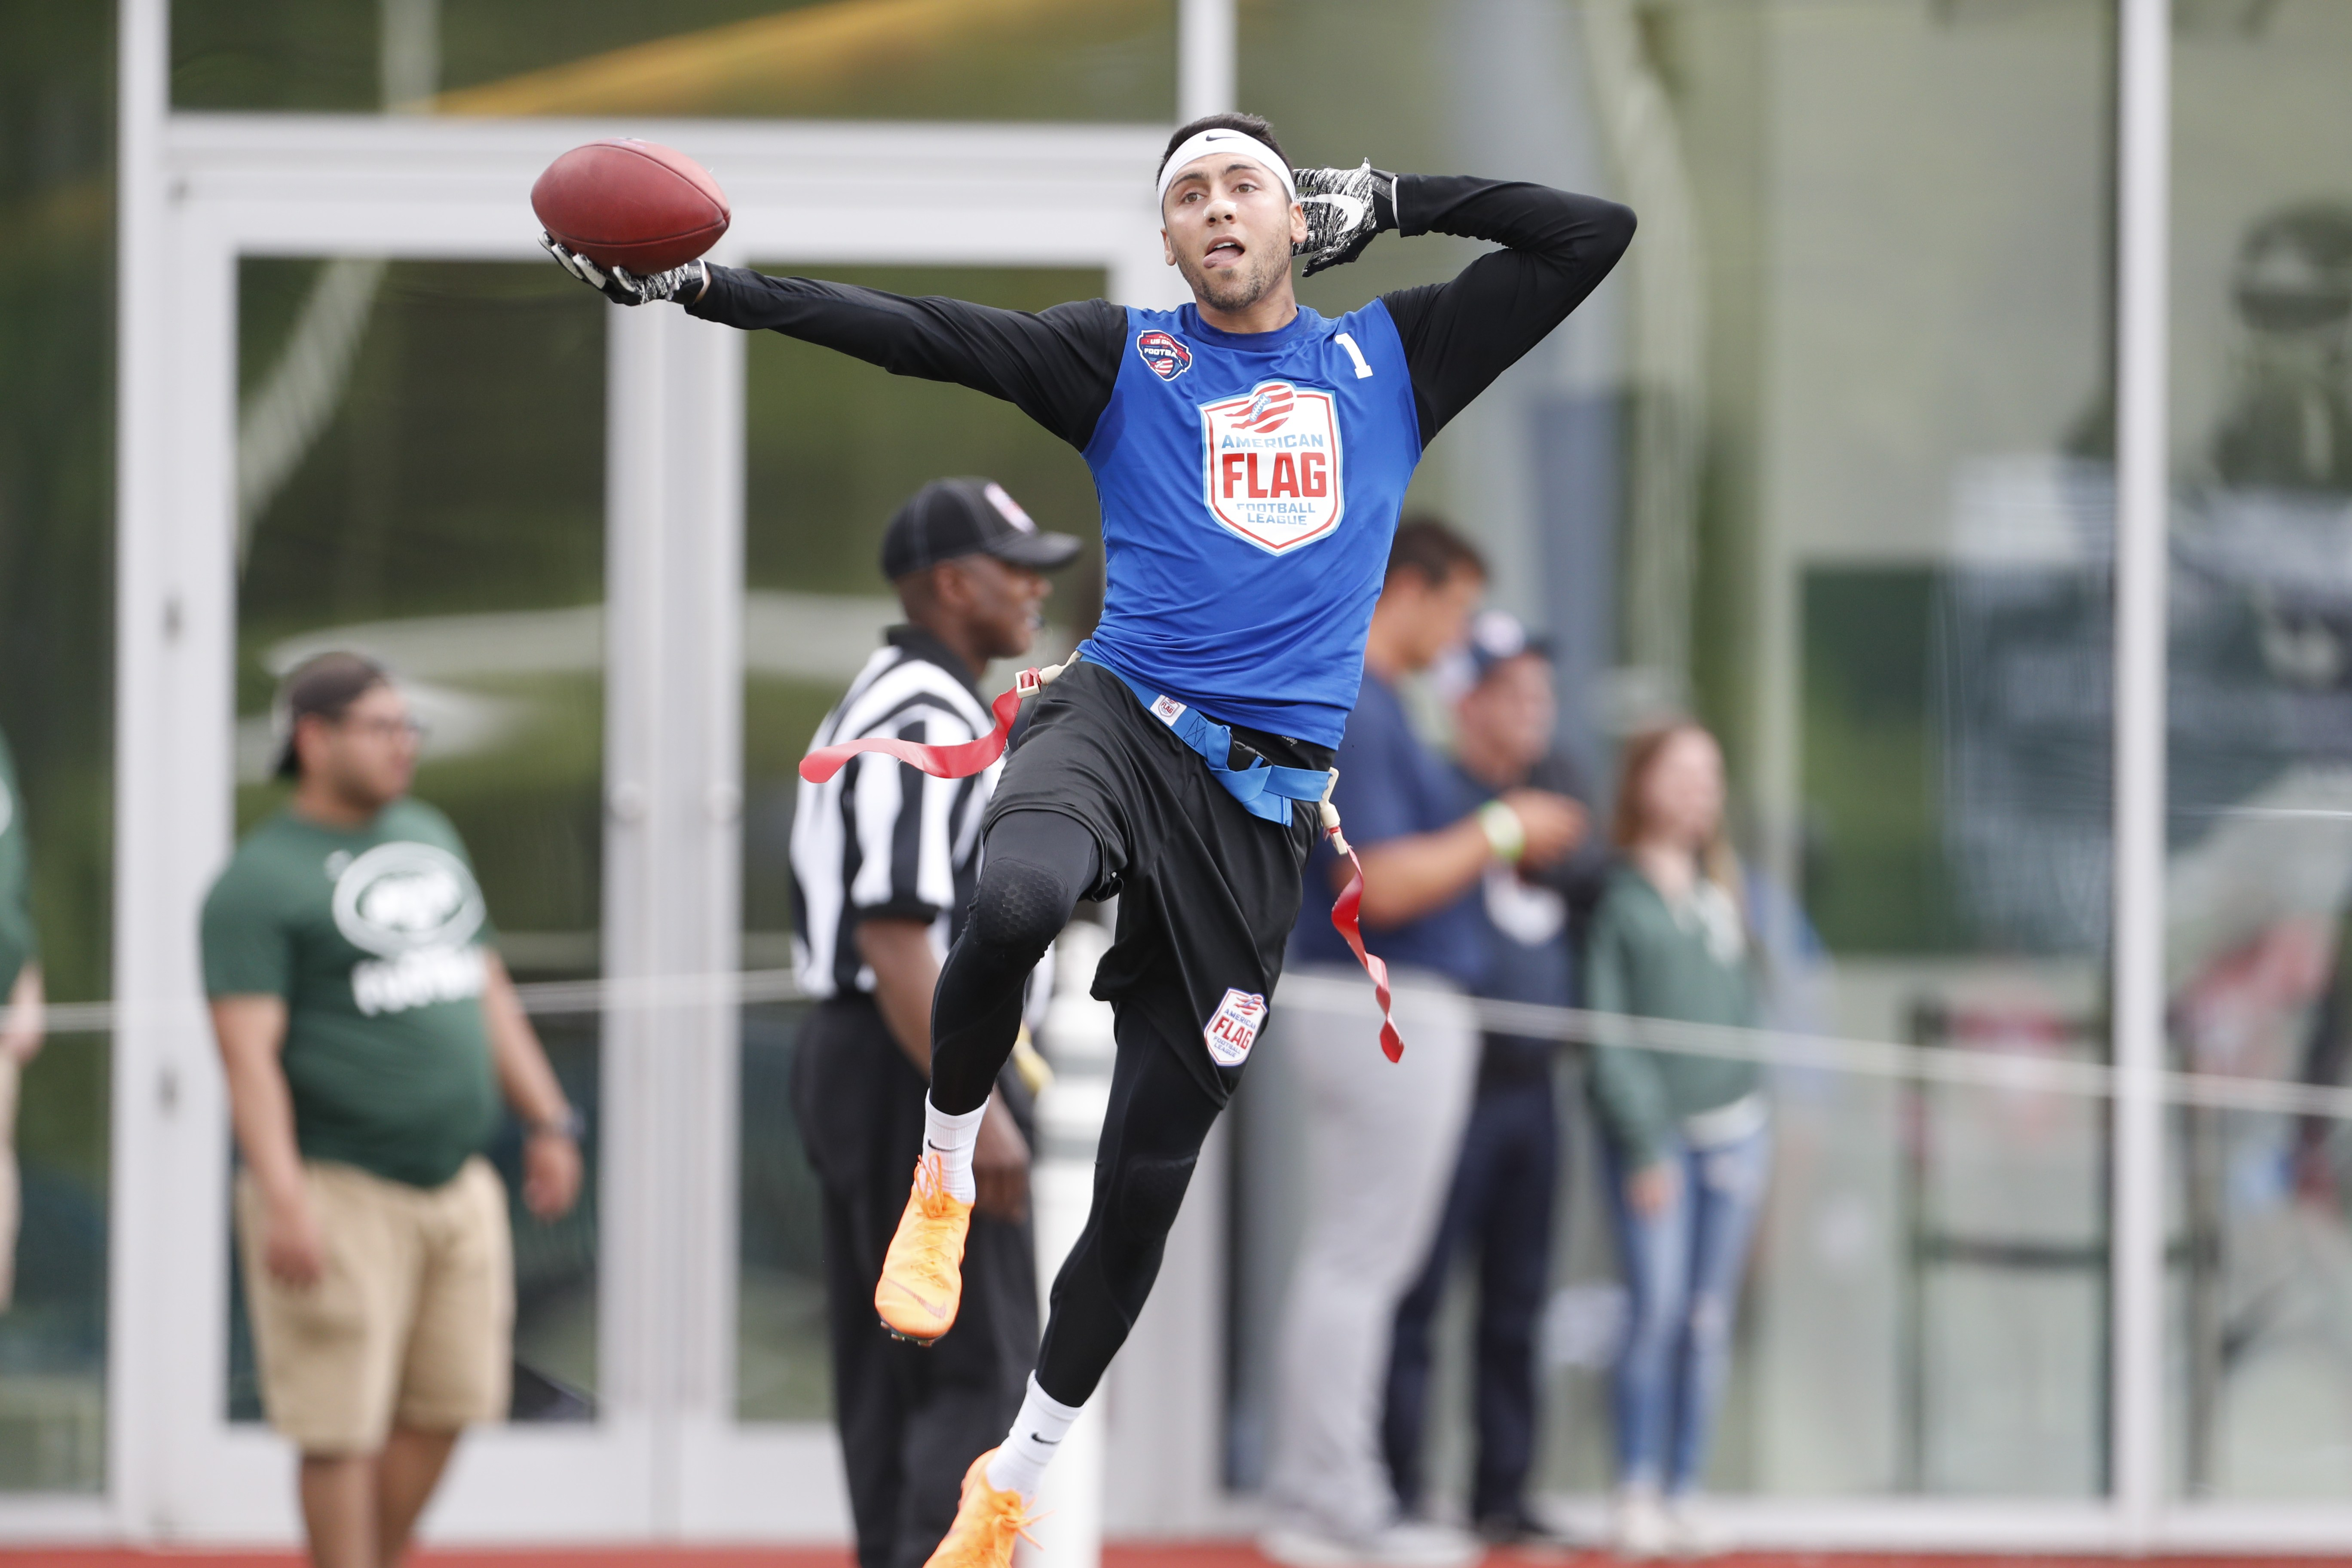 ... Sunday, May 20, 2018 in Florham Park, N.J. (Adam Hunger/AP Images for American Flag Football League)